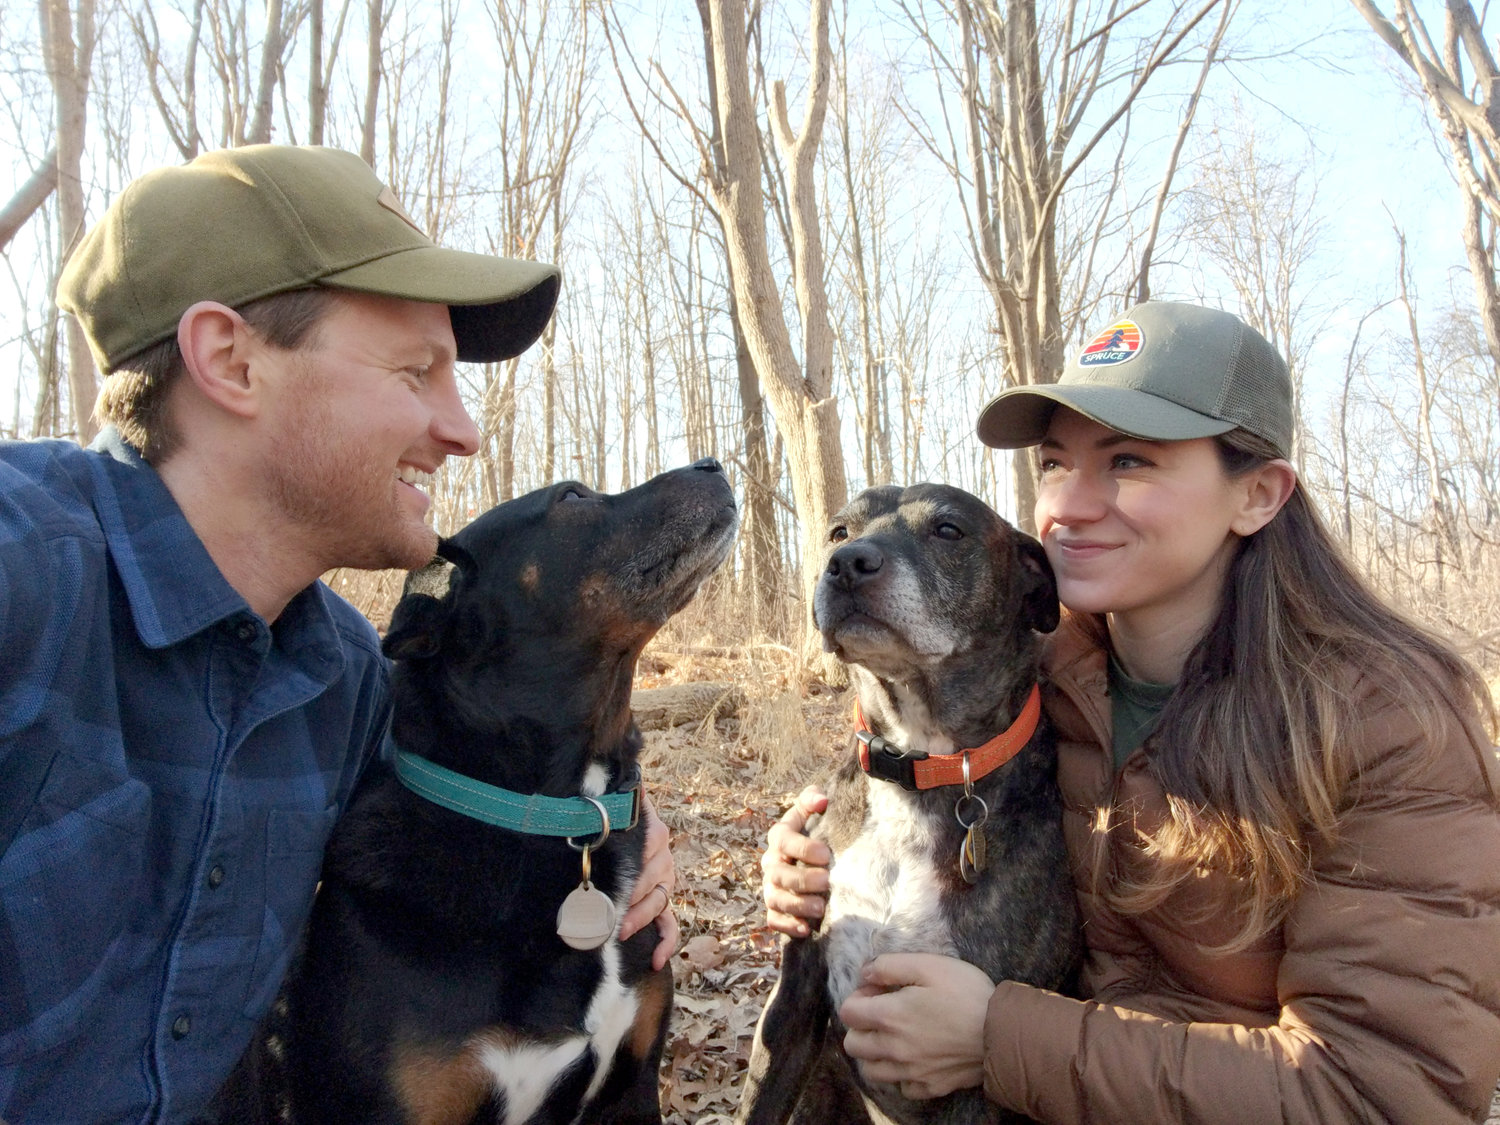 Elijah and Leah Wiegman with their inspiring pups (all images by Spruce)